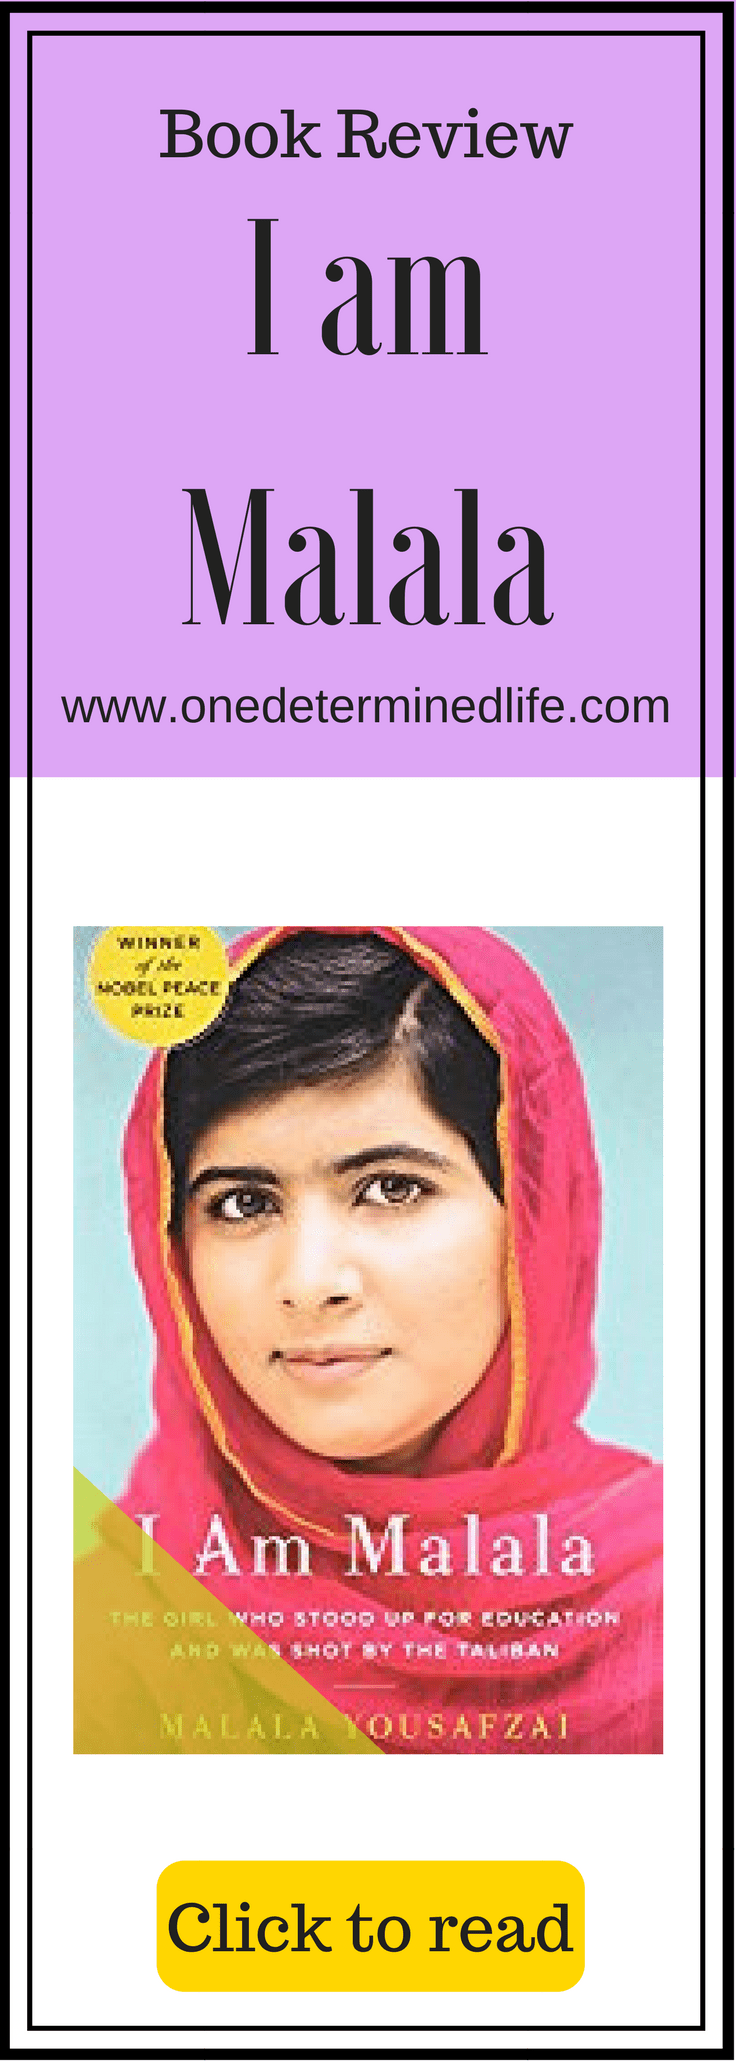 i am malala book review The last book i read was the biography of malala yousafzai titled i am malala in case you haven't heard of her she is a young woman (born 1997) who was awarded the 2014 noble peace prize for her campaigning for education and women's rights to go to school.